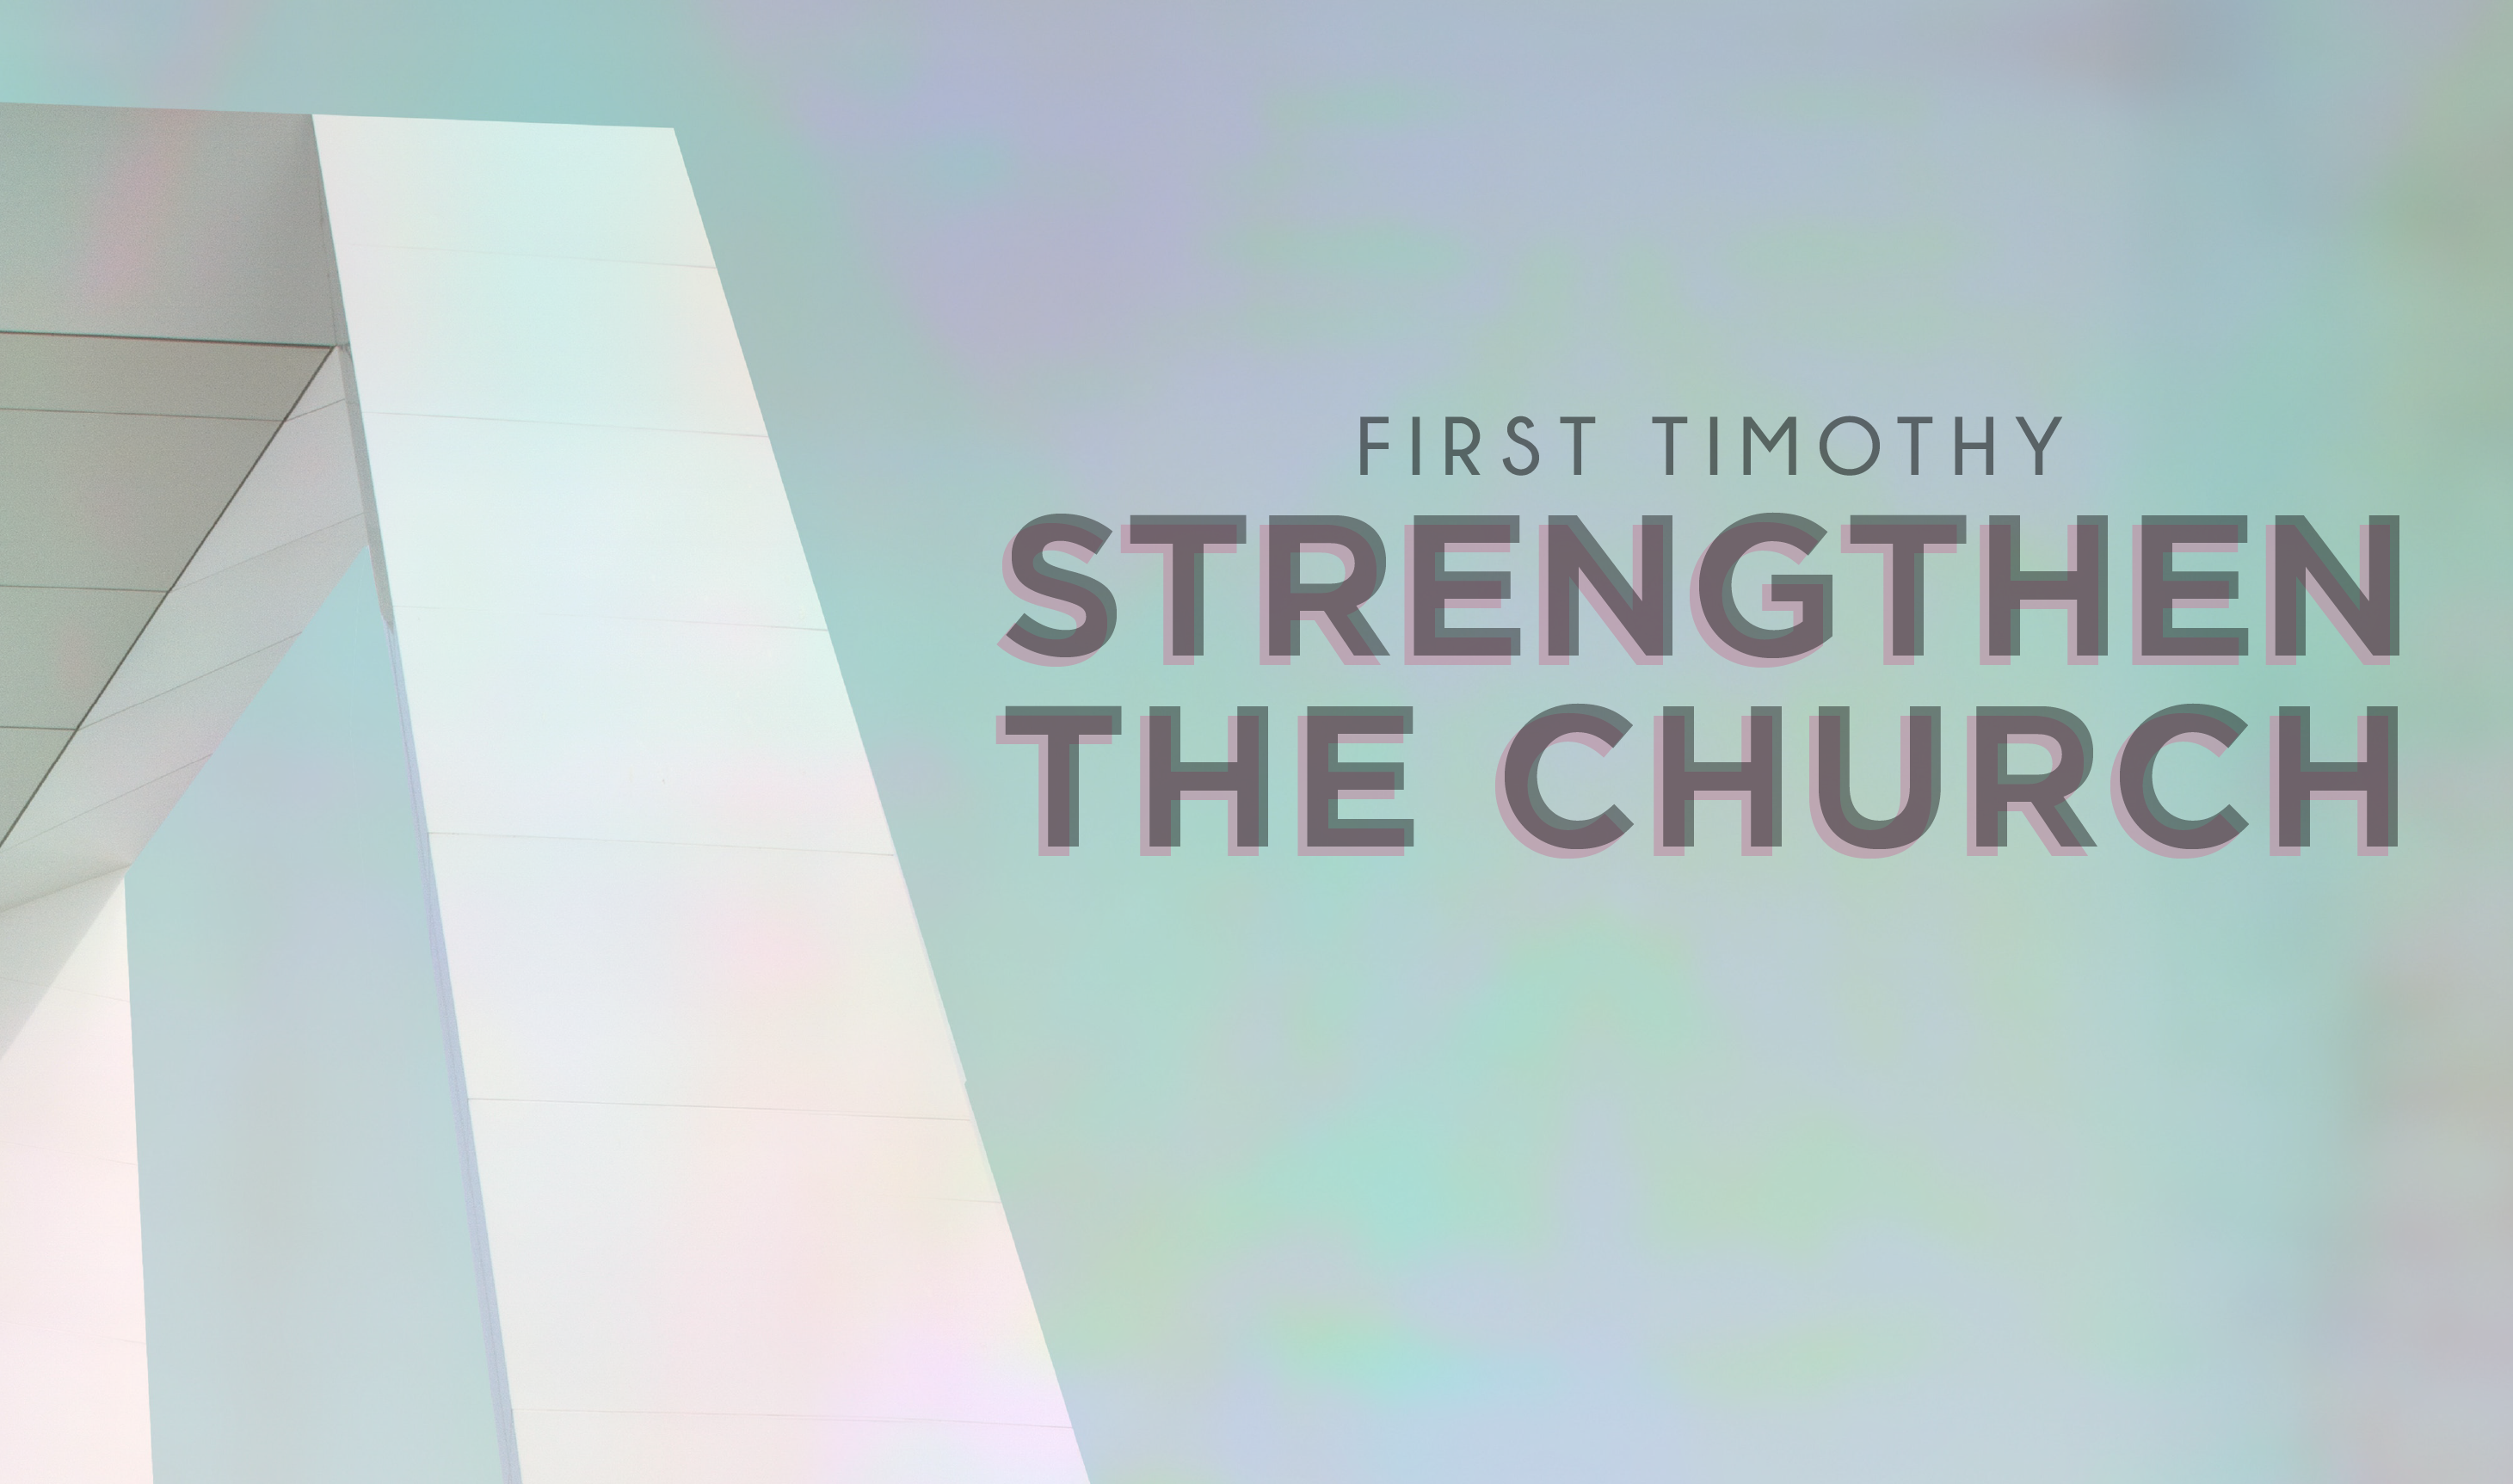 Strengthen the Church